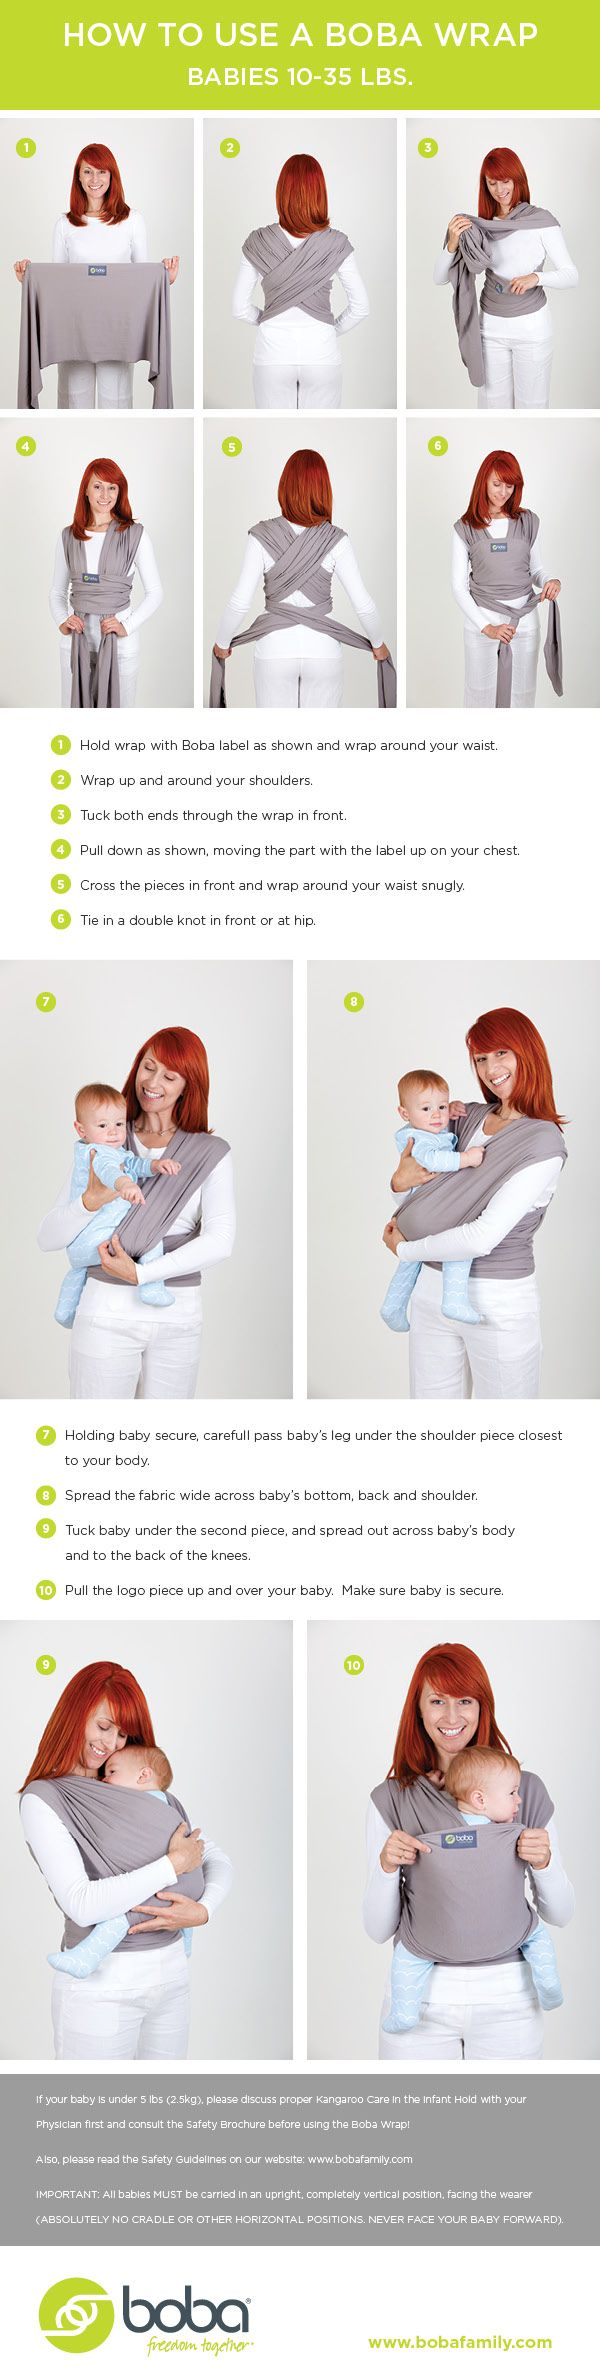 Helpful then in your wrap track spikes and get carrier the on baby  babywearing way  tie academy baby instructions best a to how